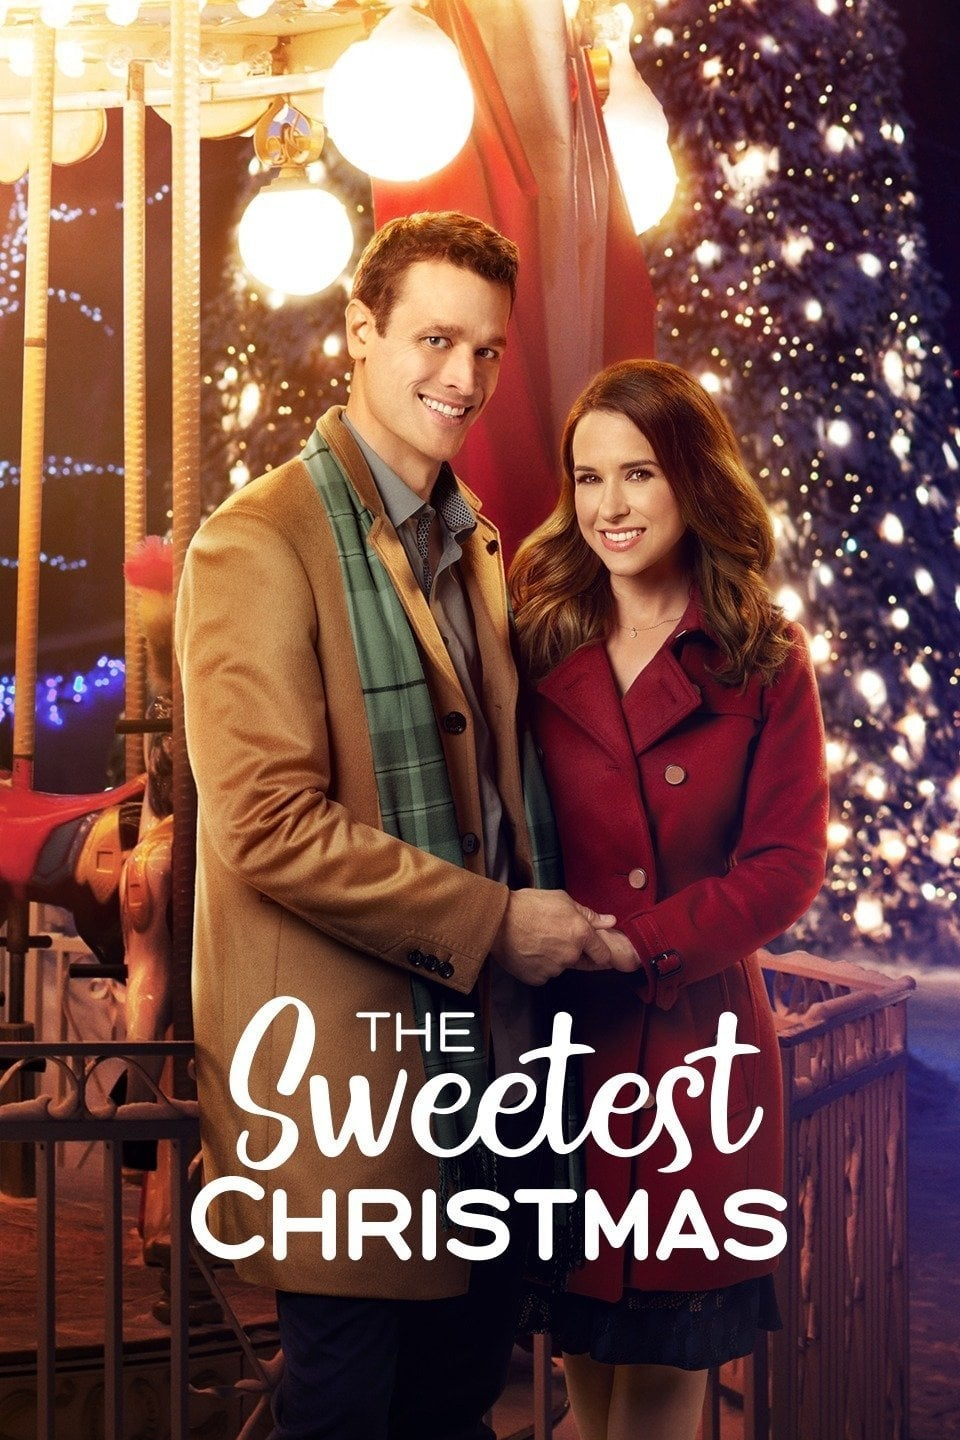 دانلود فیلم The Sweetest Christmas 2017